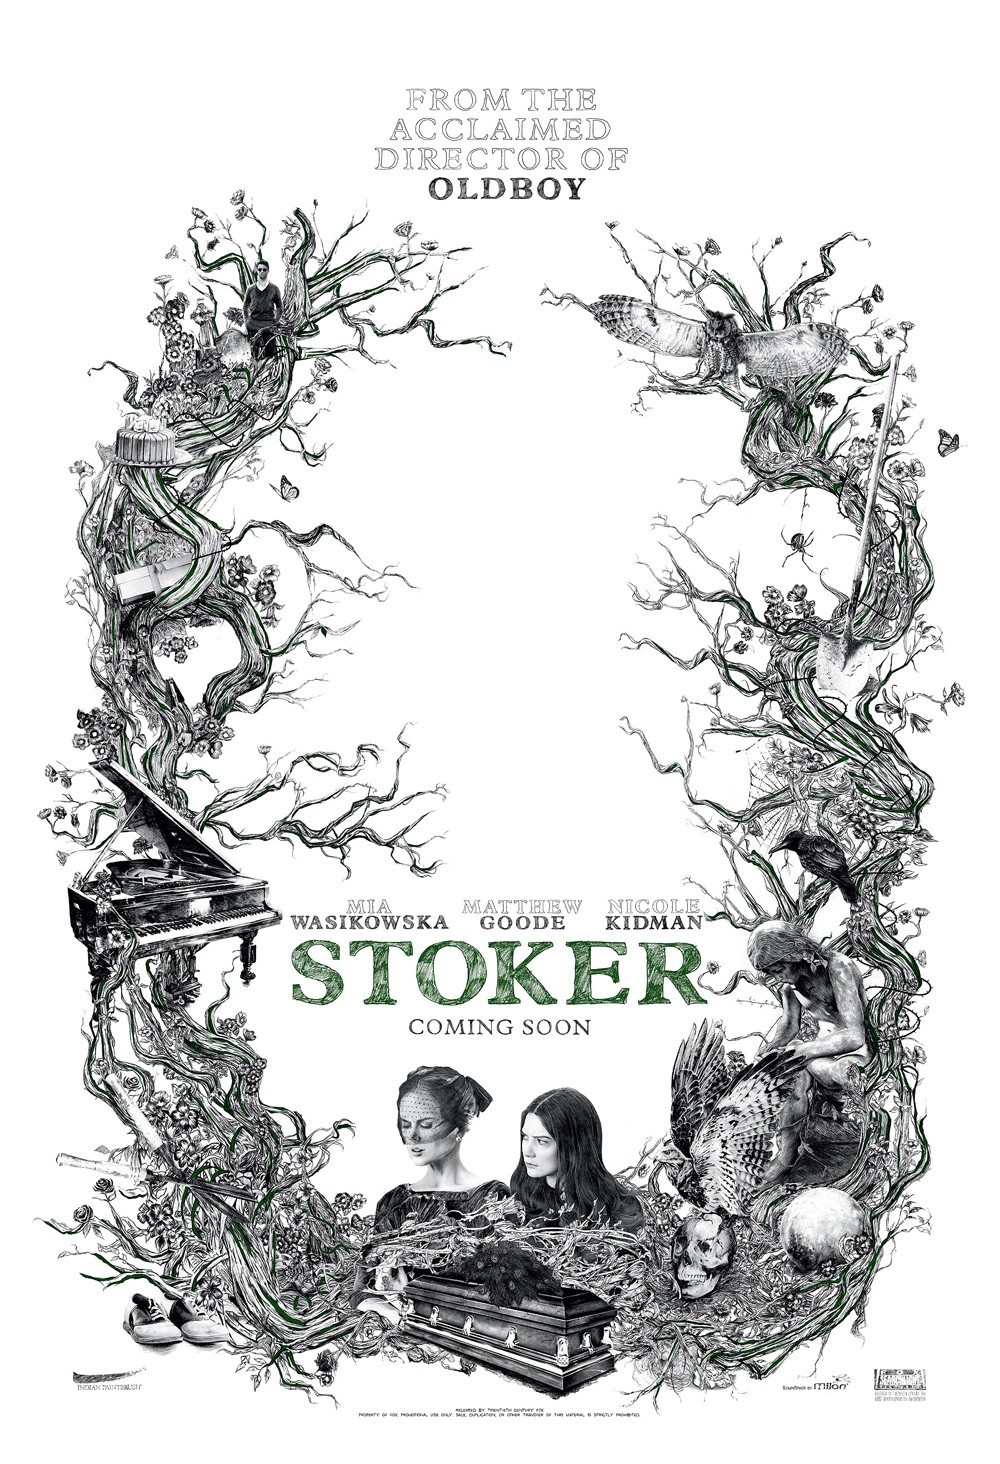 Sketchy Poster for Stoker Despite seeming a bit playful for the tone of Chan-wook Park's new thriller, this one sheet sure is eye-catching.